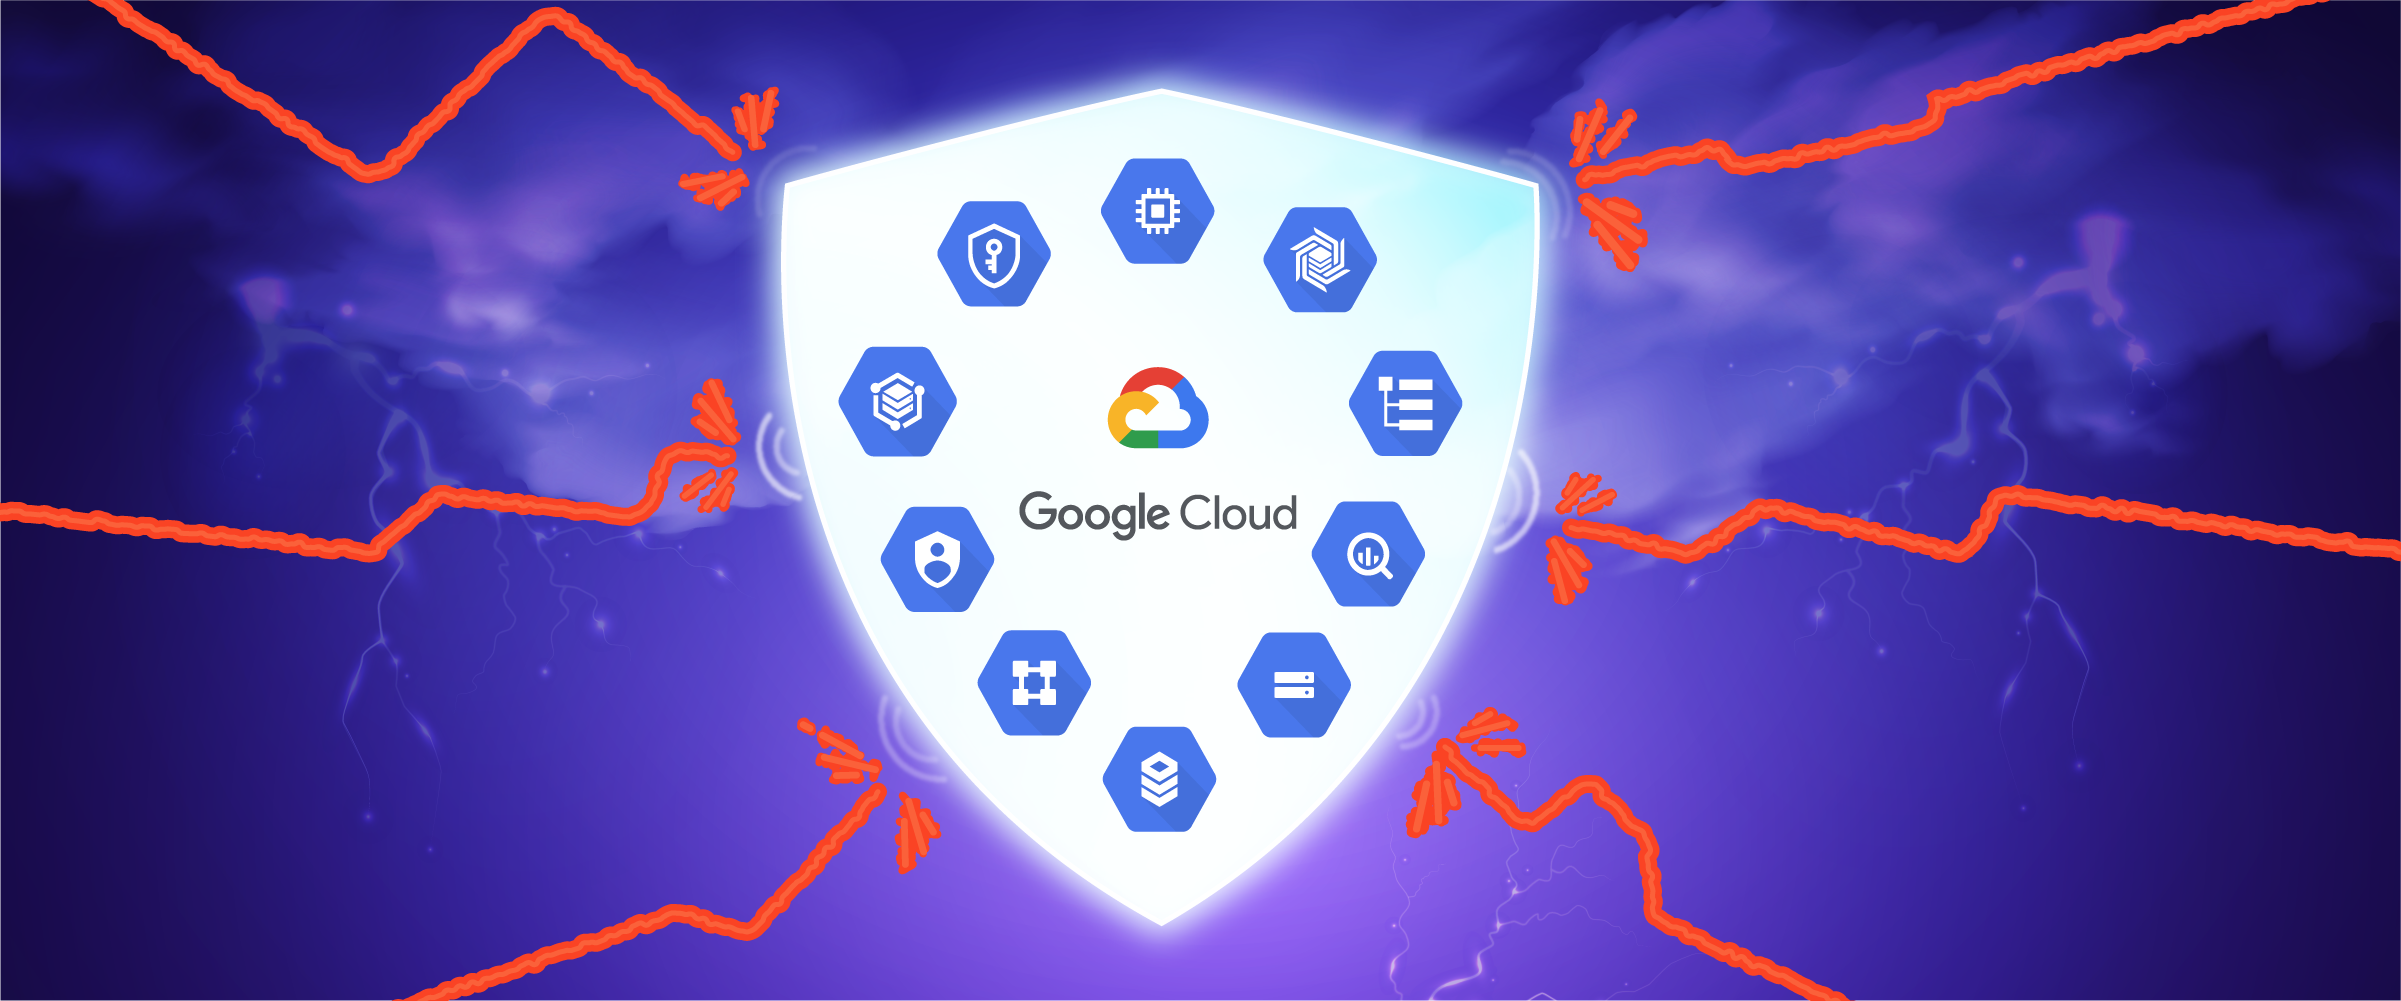 Google Cloud logo surrounded by Google cloud services. All are protected against threats.